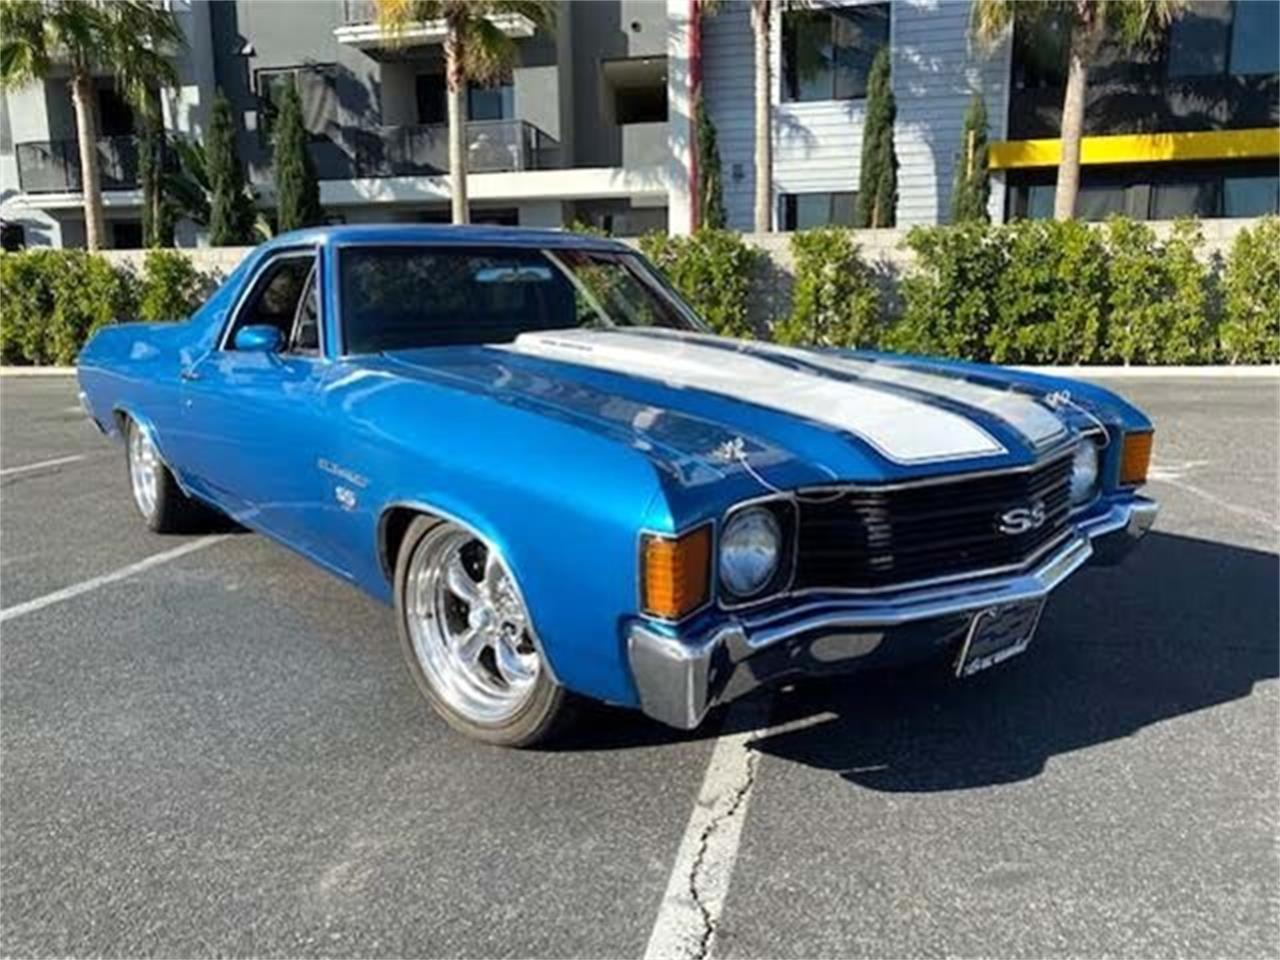 1972 Chevrolet El Camino (CC-1321752) for sale in Anaheim, California